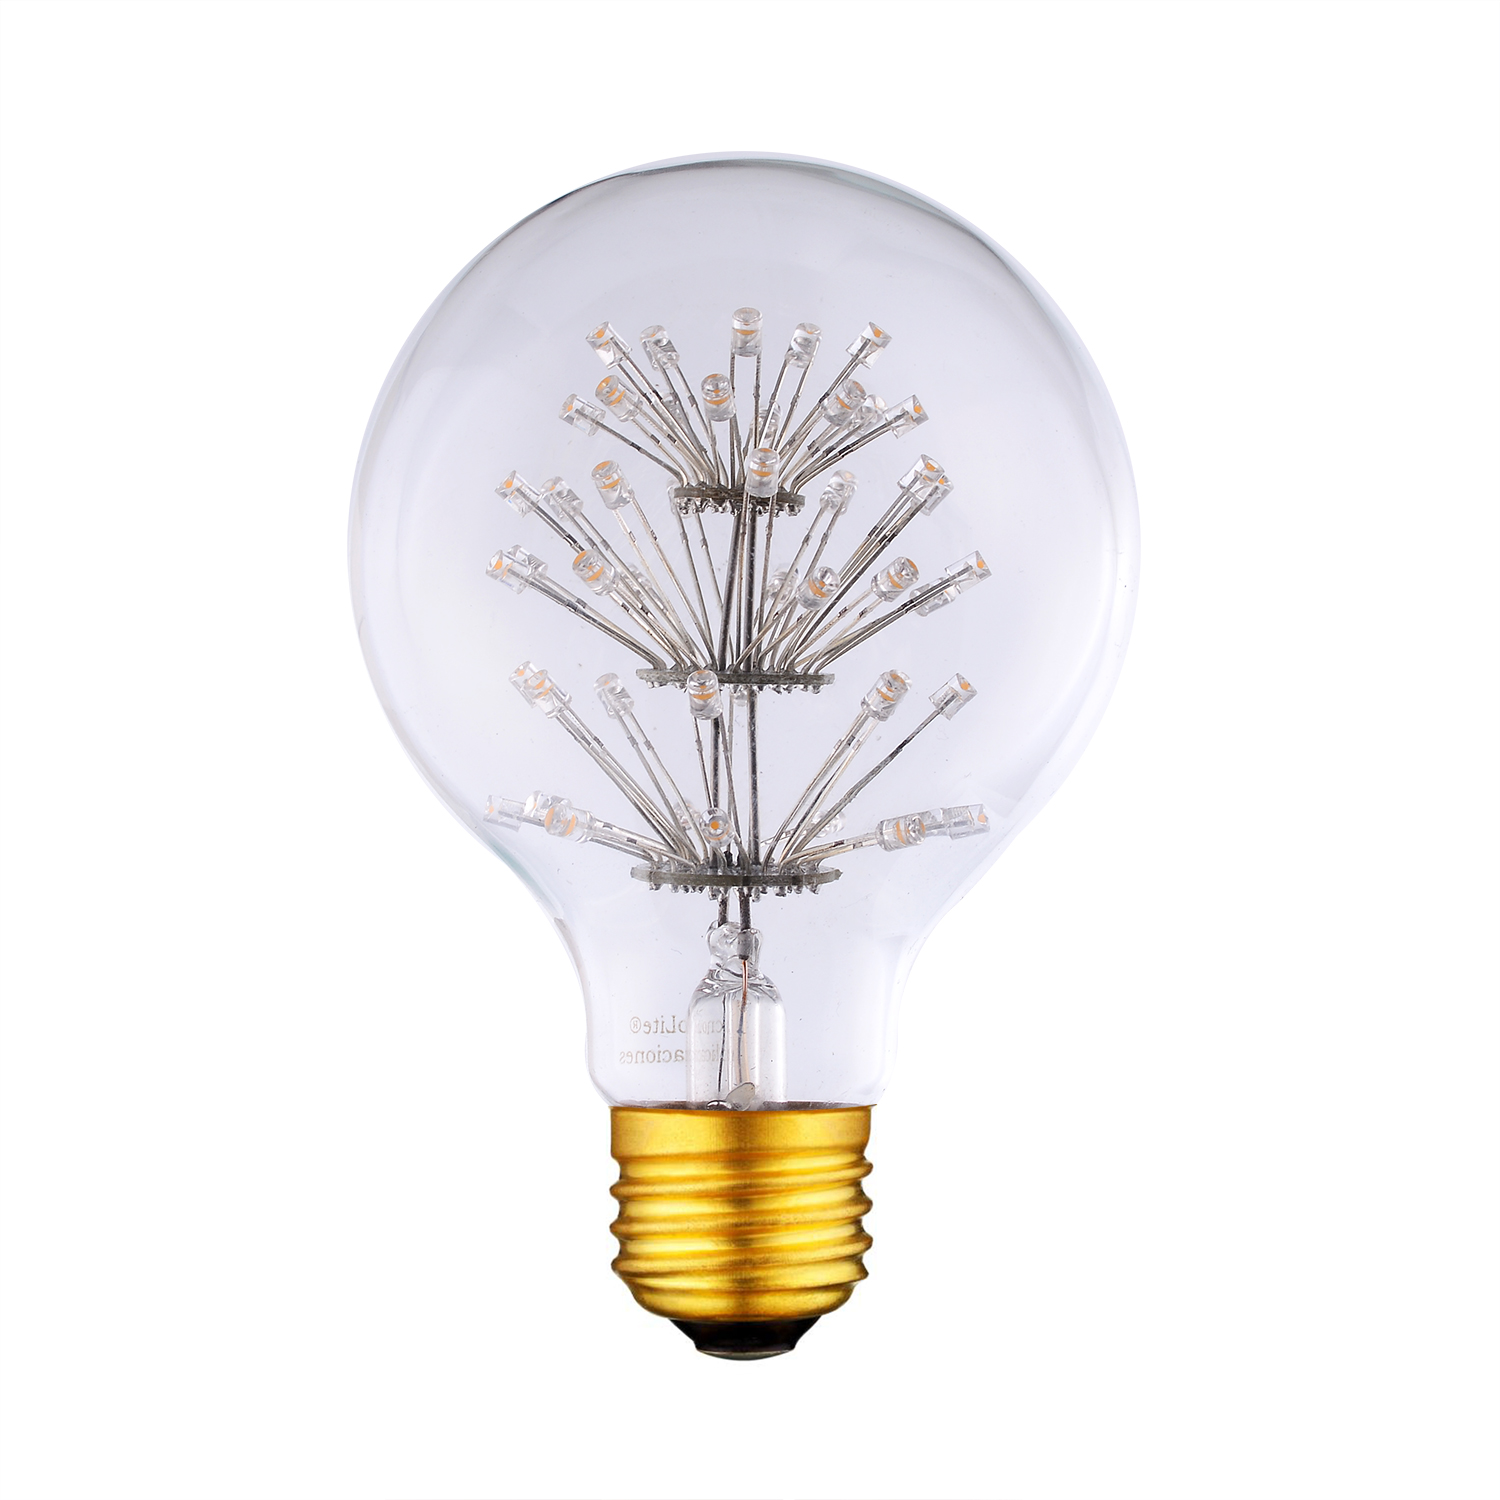 G80 Edison LED Decorative Antique Style Light Bulb